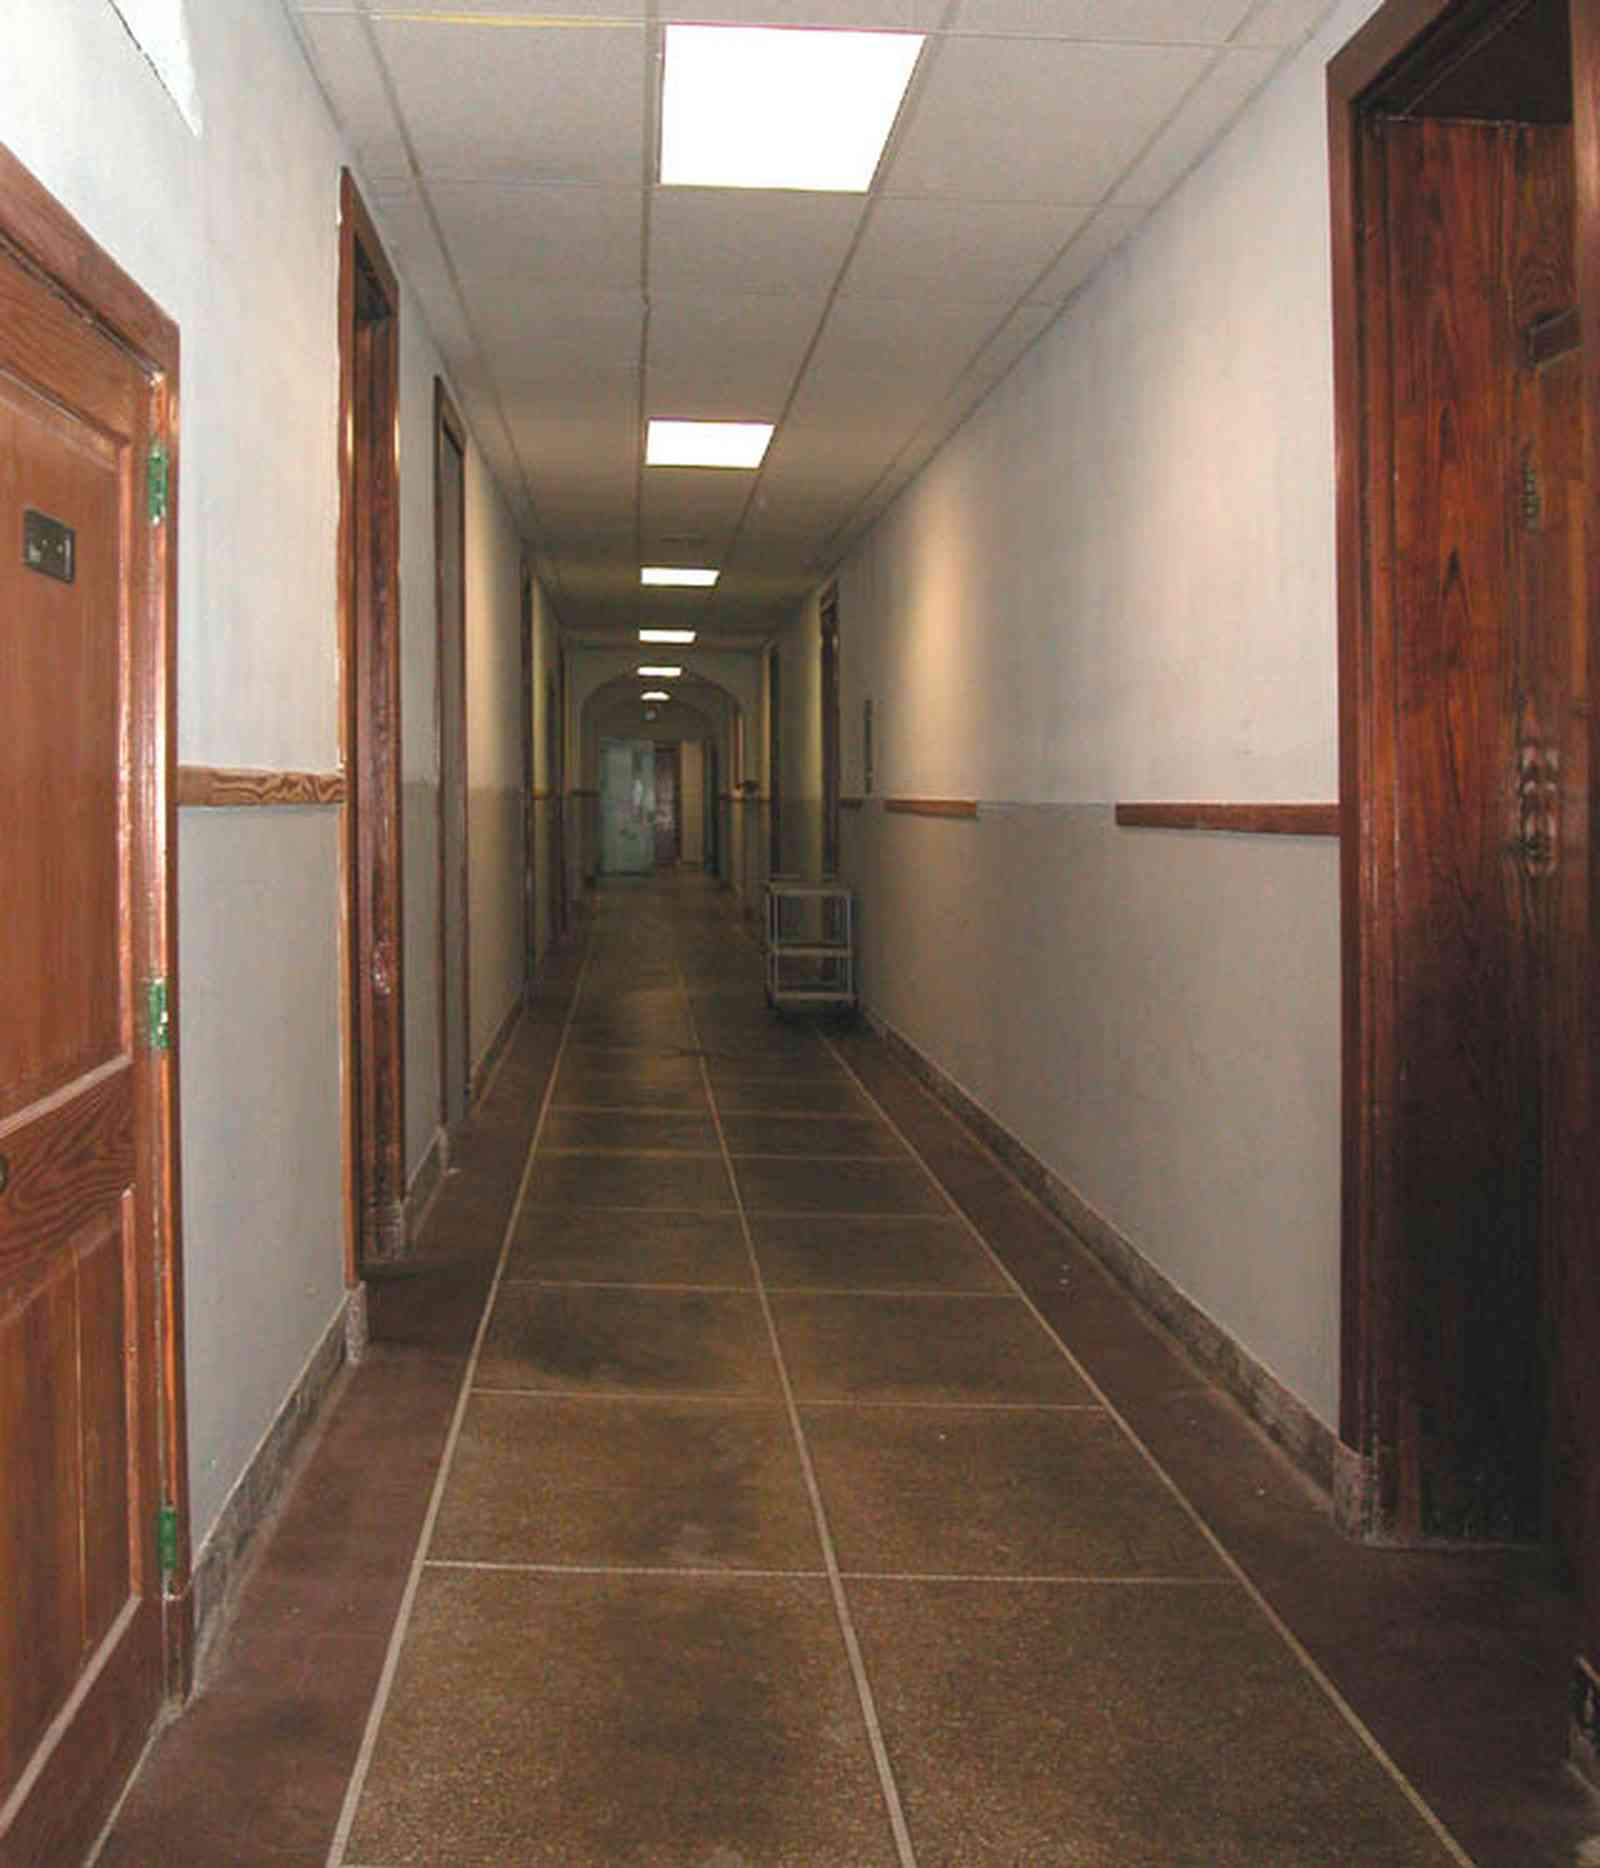 East-Hill:-Tower-East:-Old-Sacred-Heart-Hospital_38.jpg:  granite floor, hallway, gothic revival architecture, wooden doors